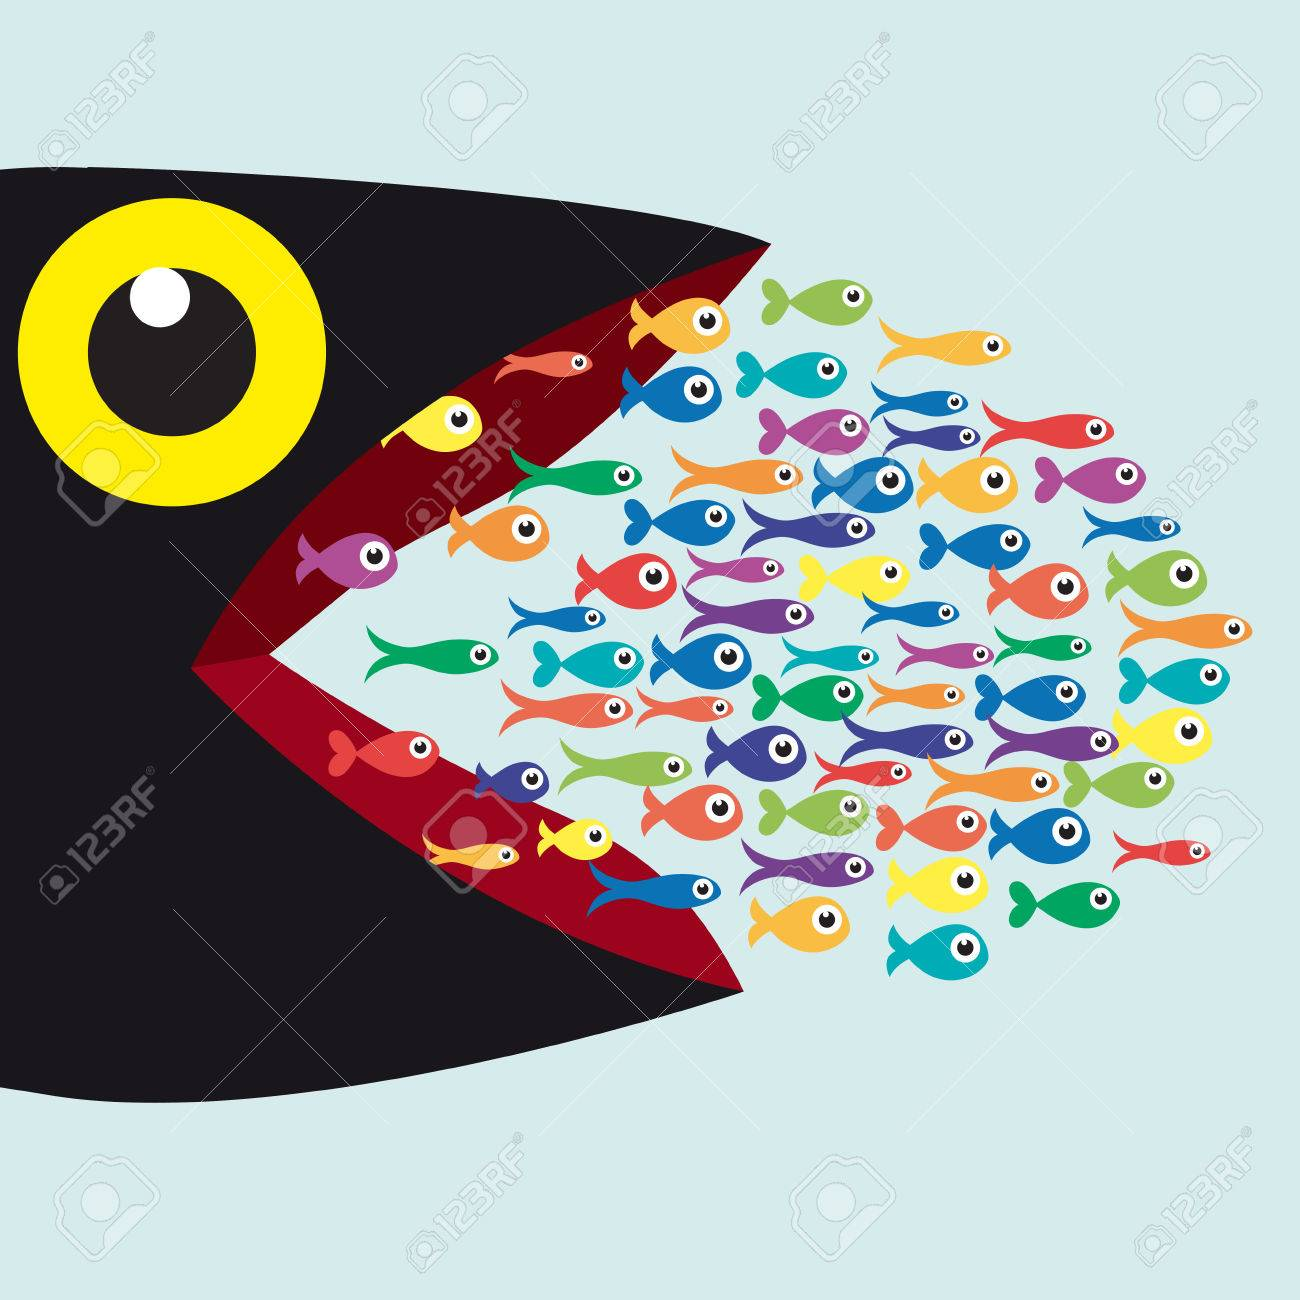 Big Fish Eat Small Fish Metaphor Of The Fittest Which Destroys